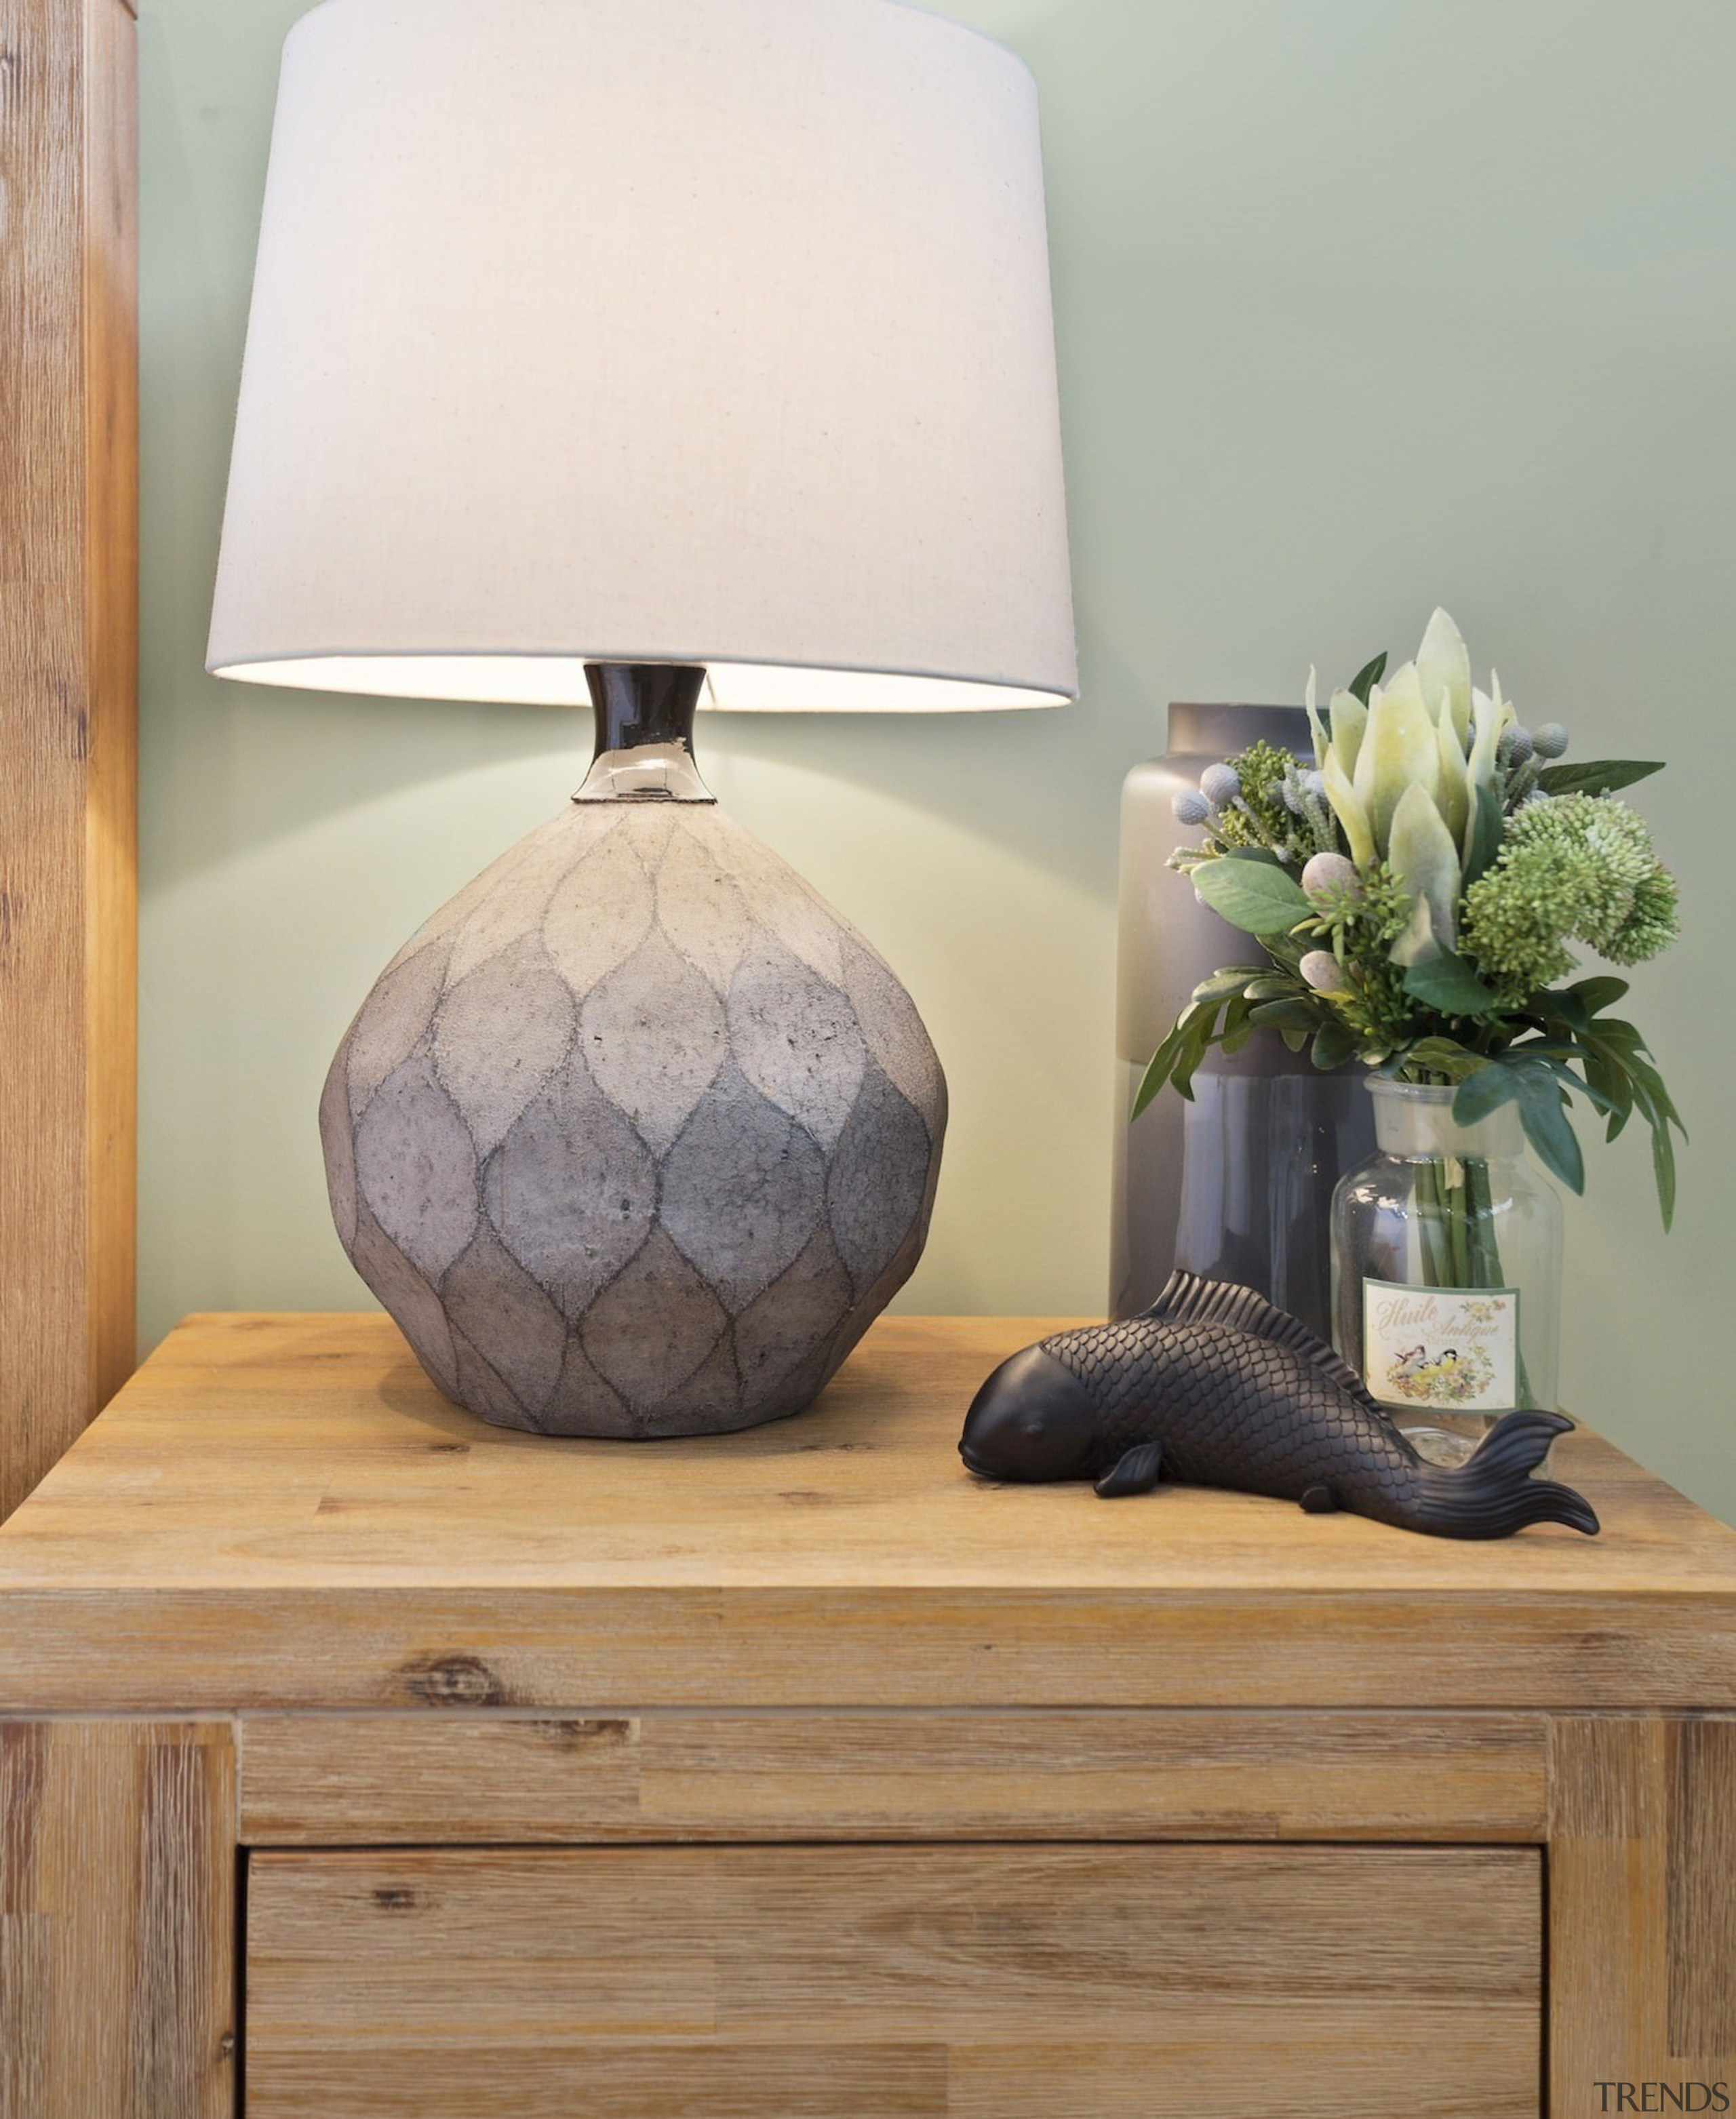 Raw Earth tones are pleasing to the eye furniture, lamp, lampshade, light fixture, lighting, lighting accessory, product design, table, vase, wood, gray, brown